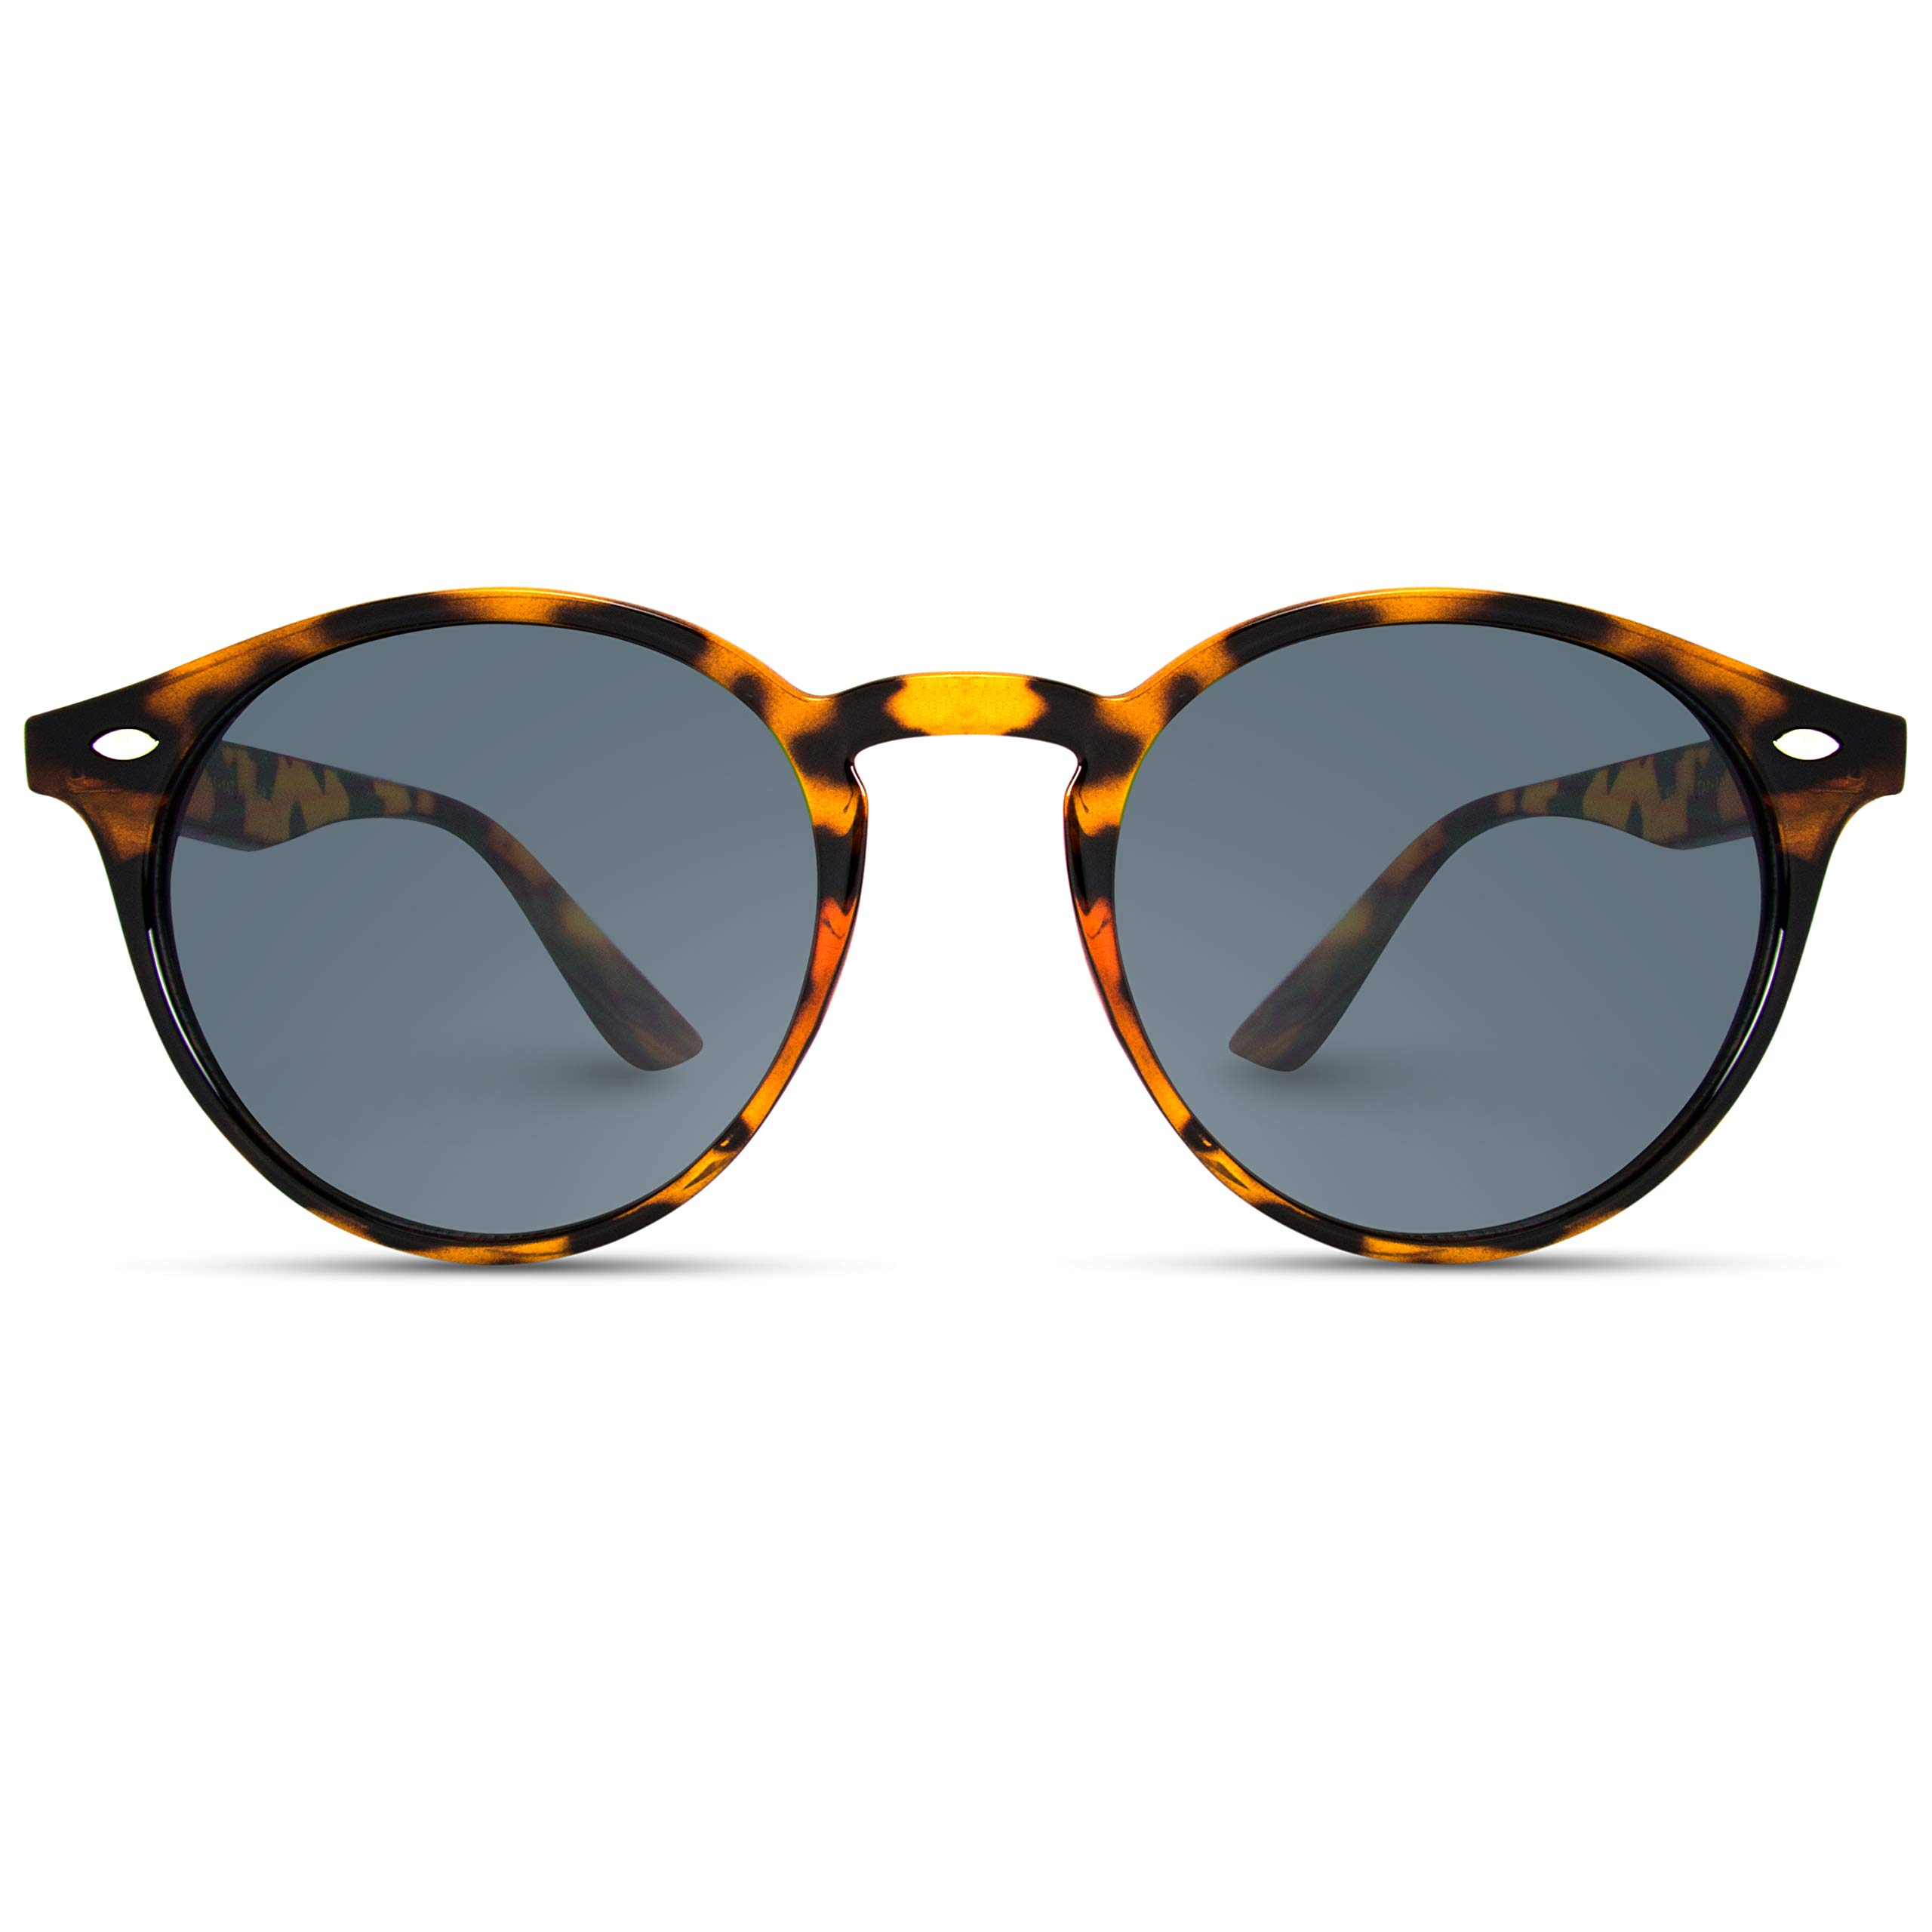 WearMe Pro Classic Small Round Retro Sunglasses, Tortoise Frame/Black Lens by WearMe Pro